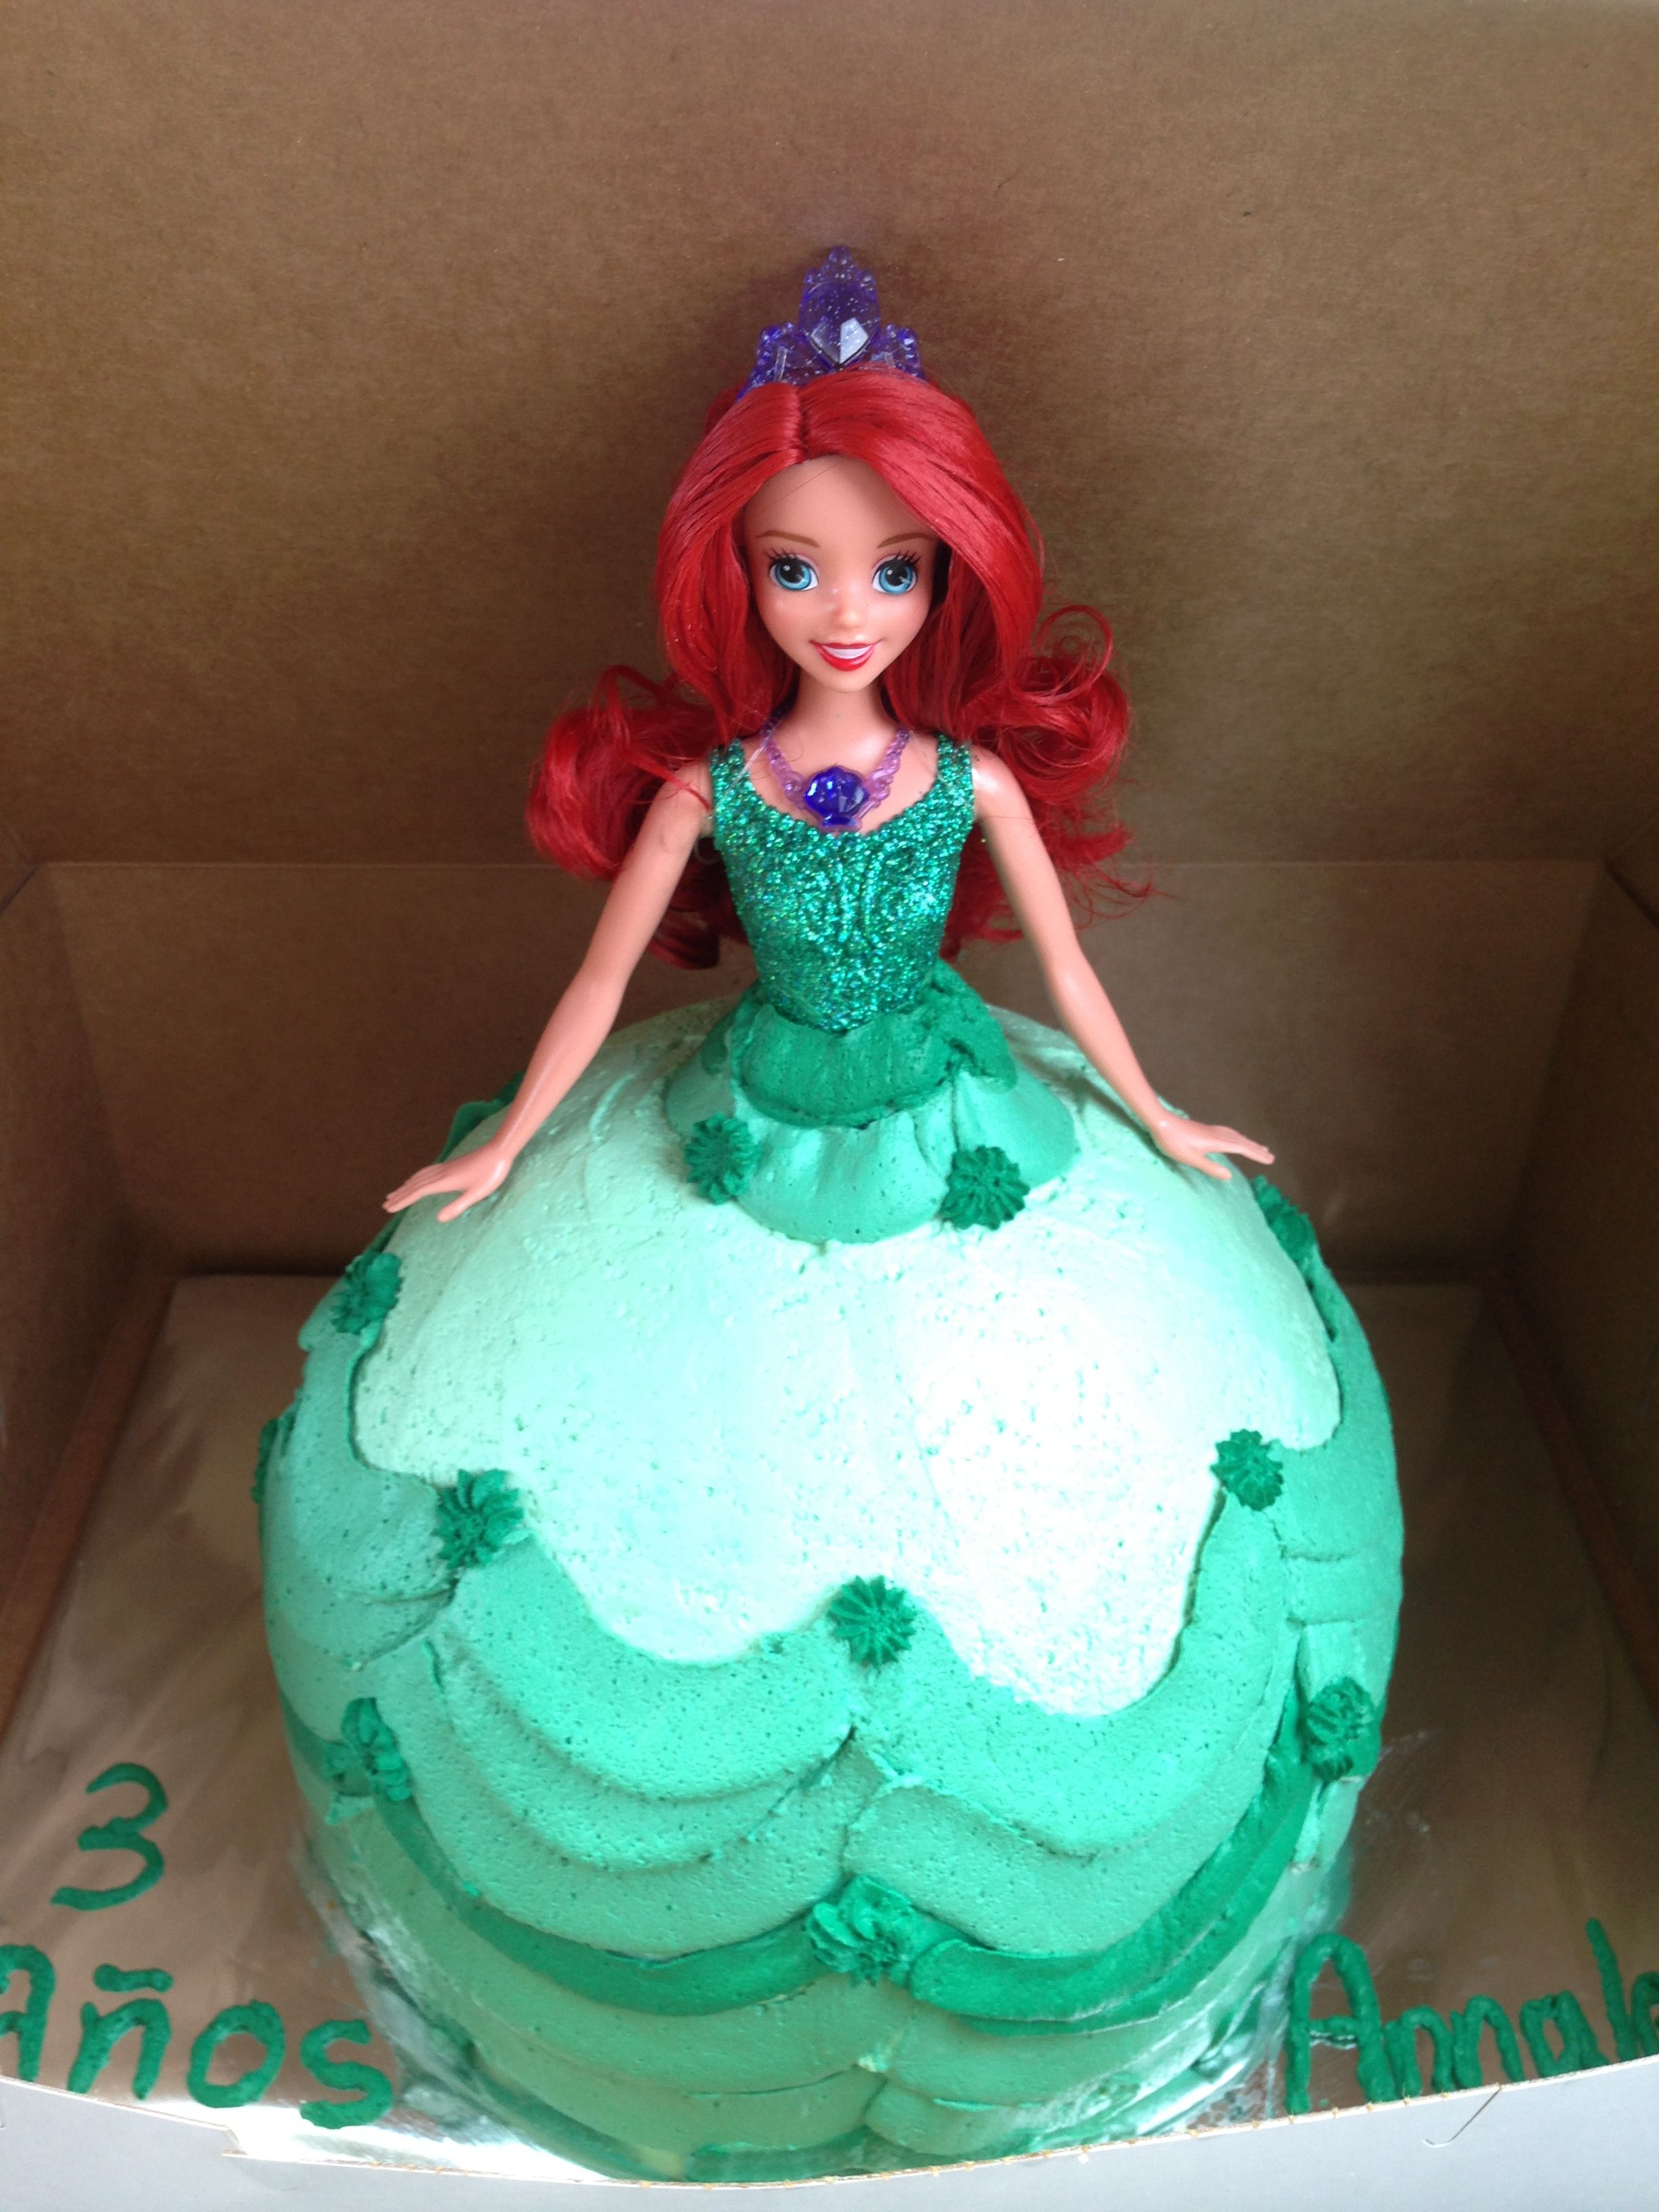 Incredible My Little Girl 3 Year Old Little Mermaid Princess Birthday Cake Funny Birthday Cards Online Fluifree Goldxyz